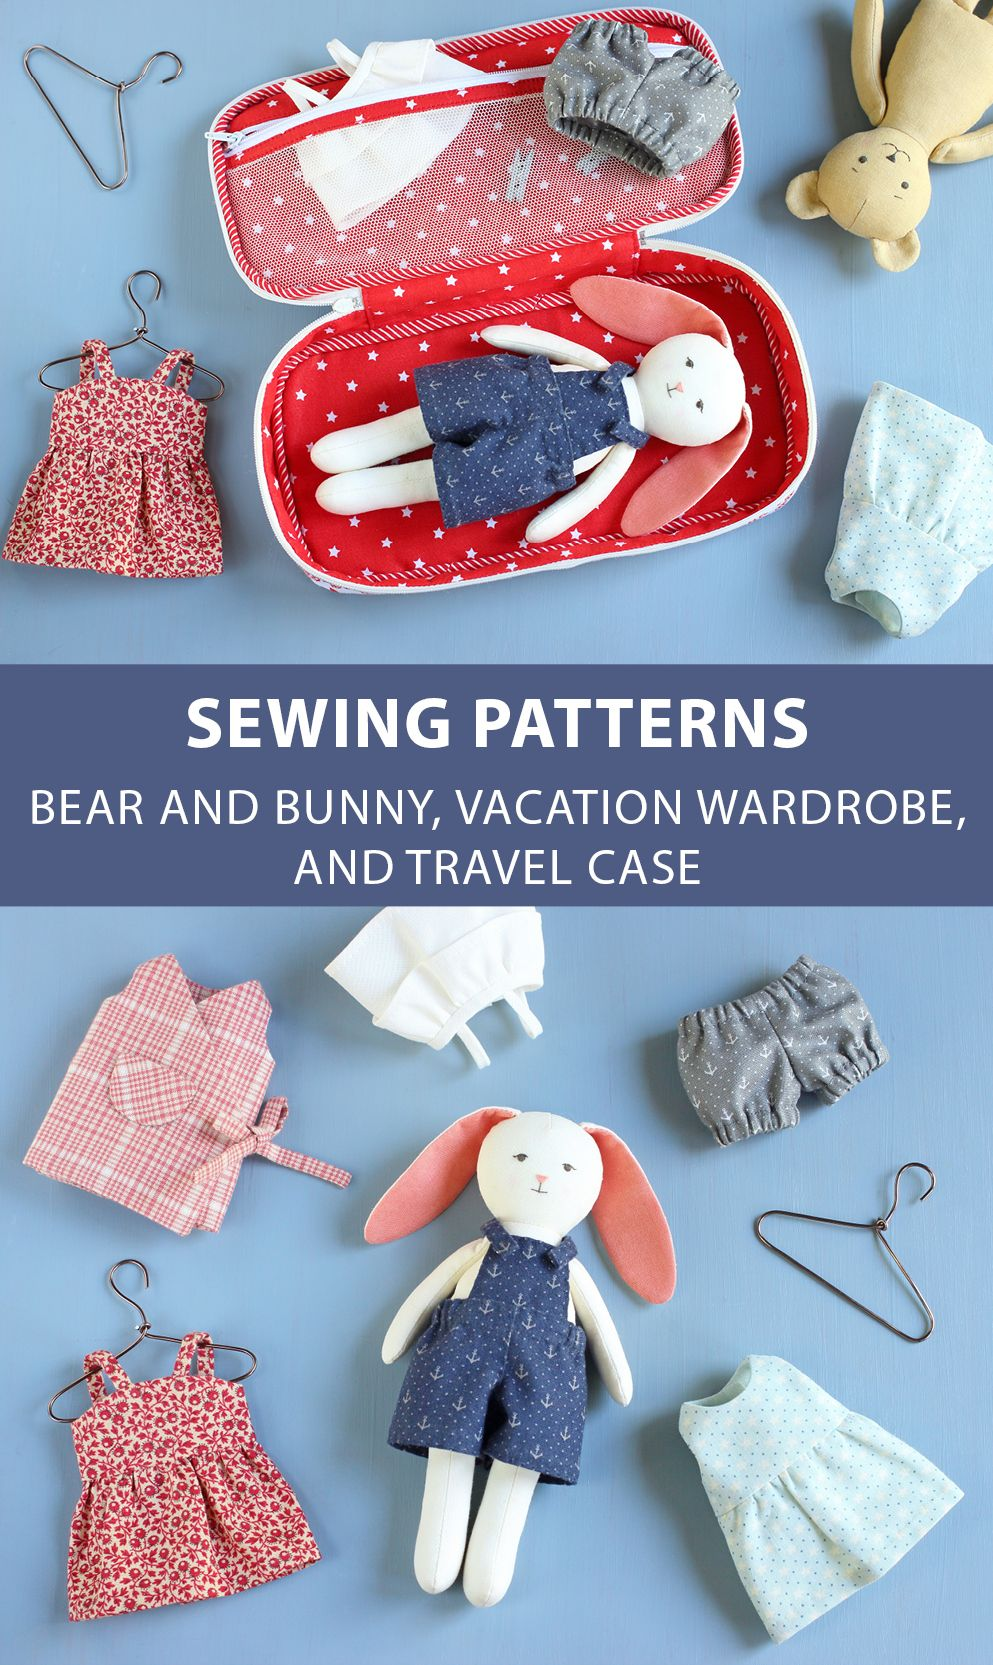 Sewing pattern for a bunny doll. Patterns for the wardrobe and travel case are also available. #etsy #etsyfinds #pattern #sewingpattern #pdfpattern #sew #sewing #sewingproject #diy #doll #bunny #traveltoy #dolls #animaldoll #travelcase #travel #instructionstodollpatterns